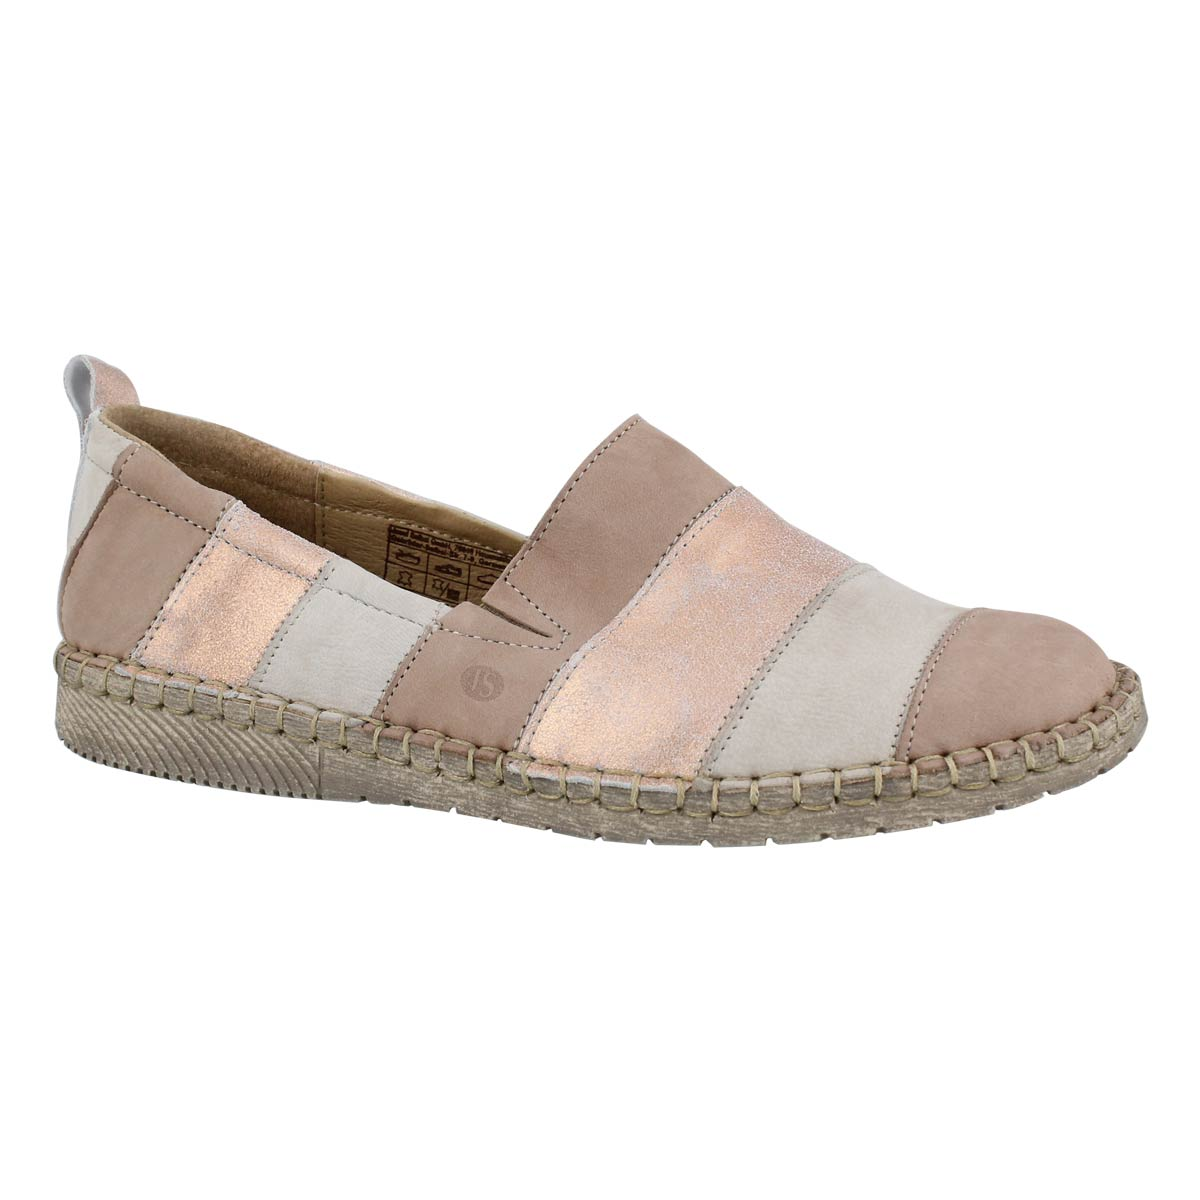 Women's SOFIE 23 nude mlti slip on shoes